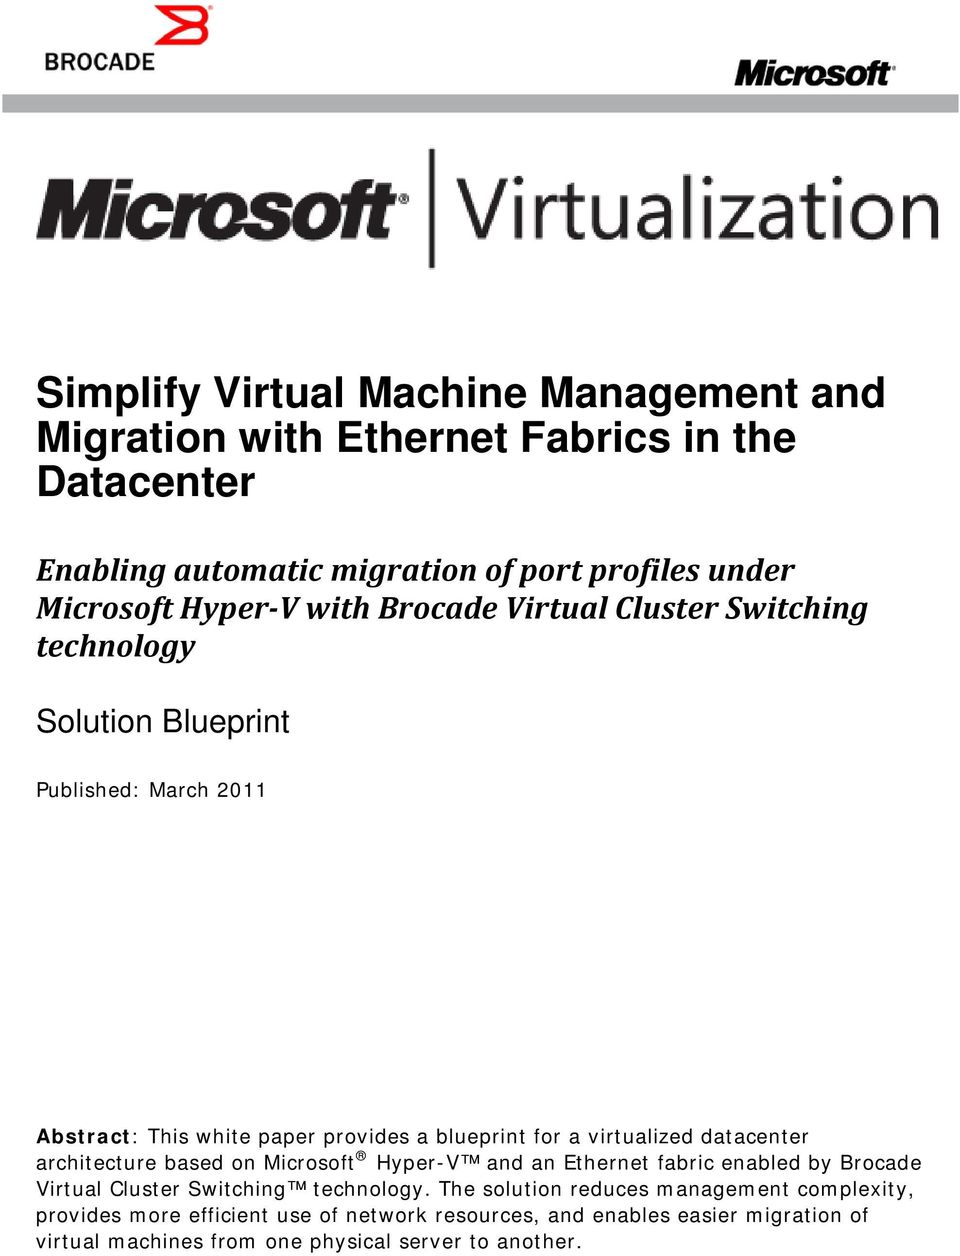 virtualized datacenter architecture based on Microsoft Hyper-V and an Ethernet fabric enabled by Brocade Virtual Cluster Switching technology.